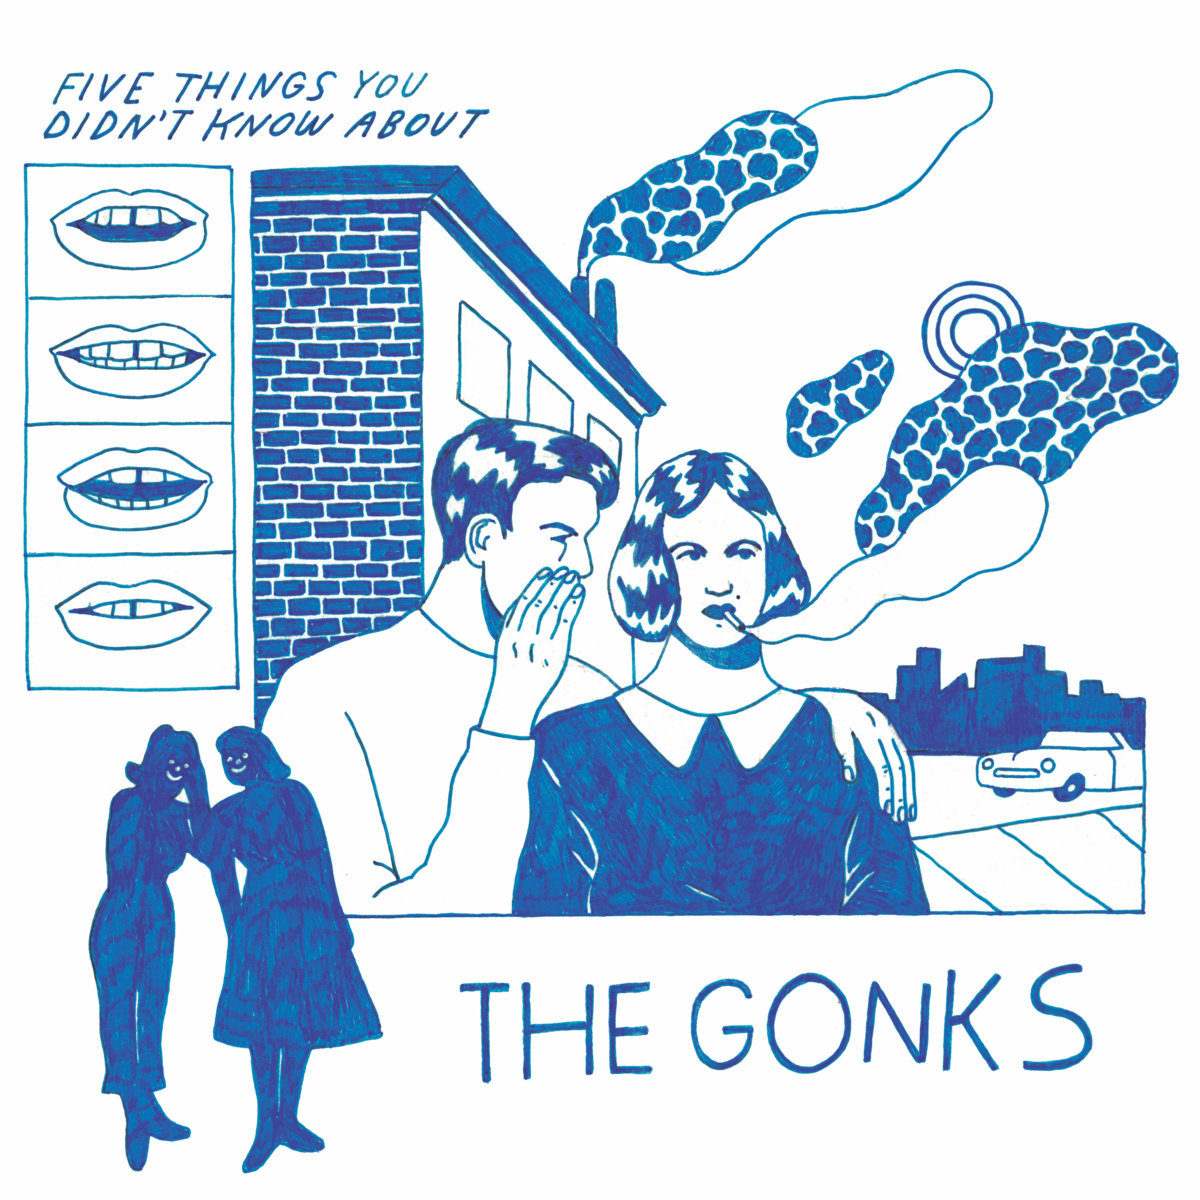 The Gonks | Five Things You Didn't Know About The Gonks | 3hive.com